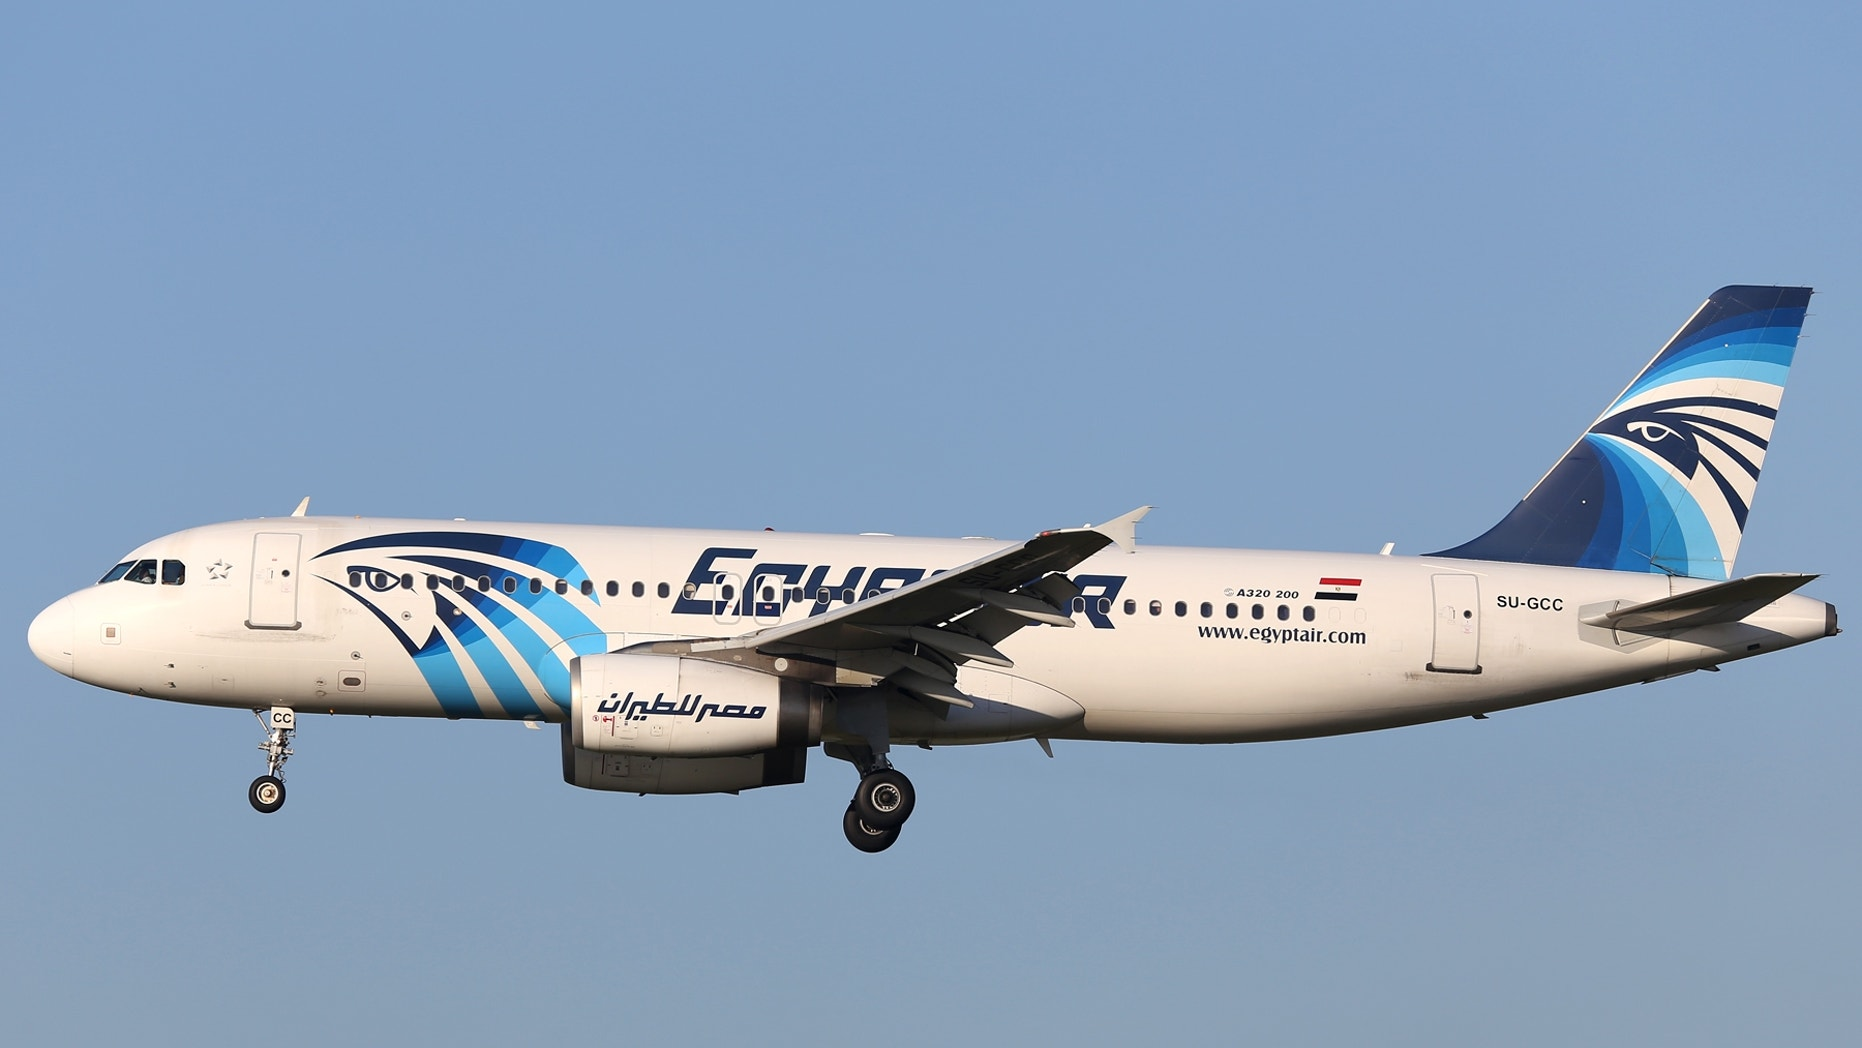 This is a Jan 2015 image of  EgyptAir Airbus A320 with the registration SU-GCC in the air near Zaventem airport in Brussels.